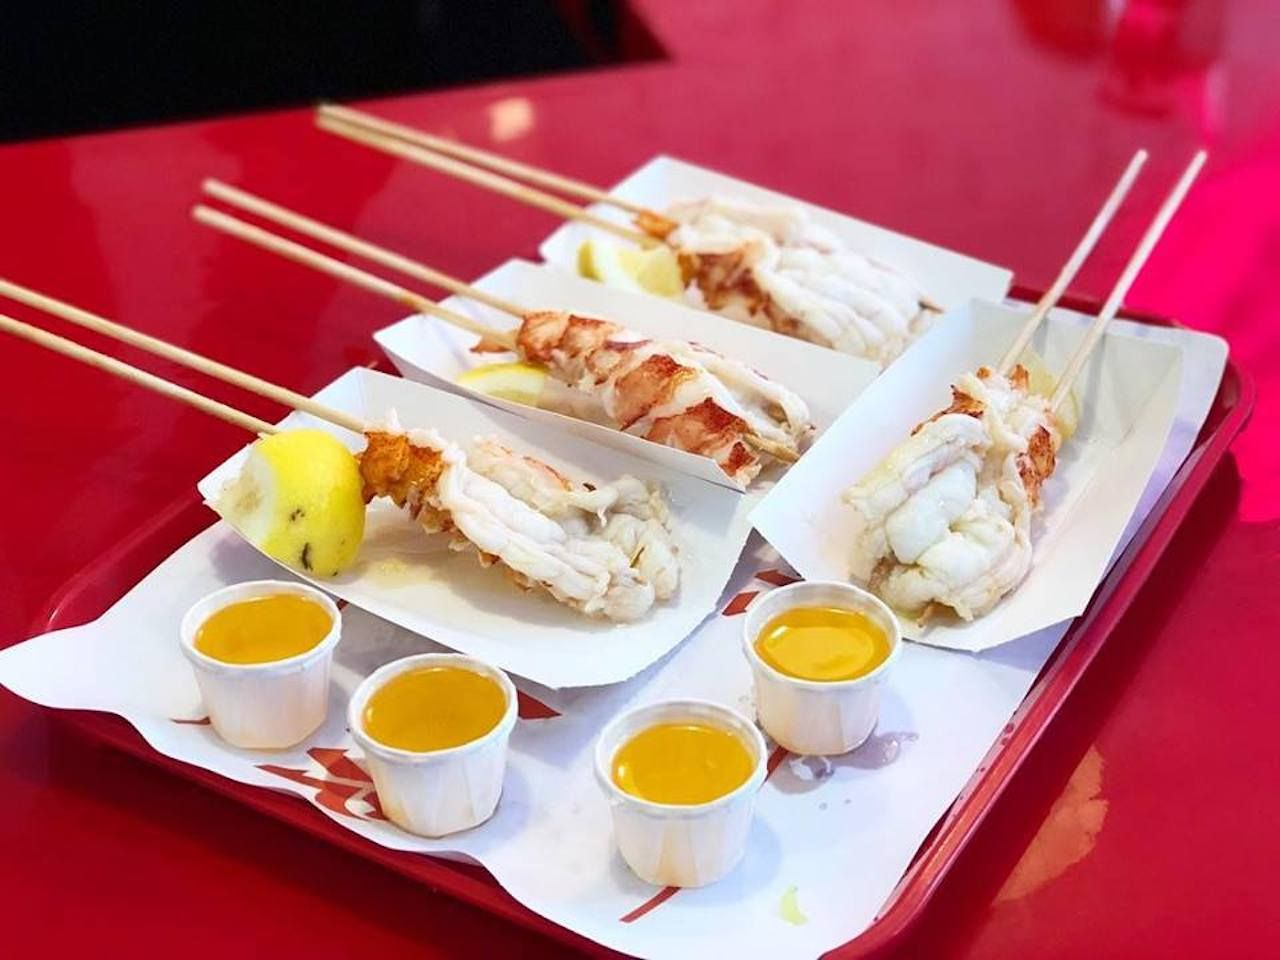 Lobster skewers from the The Highroller Lobster Co. in Maine